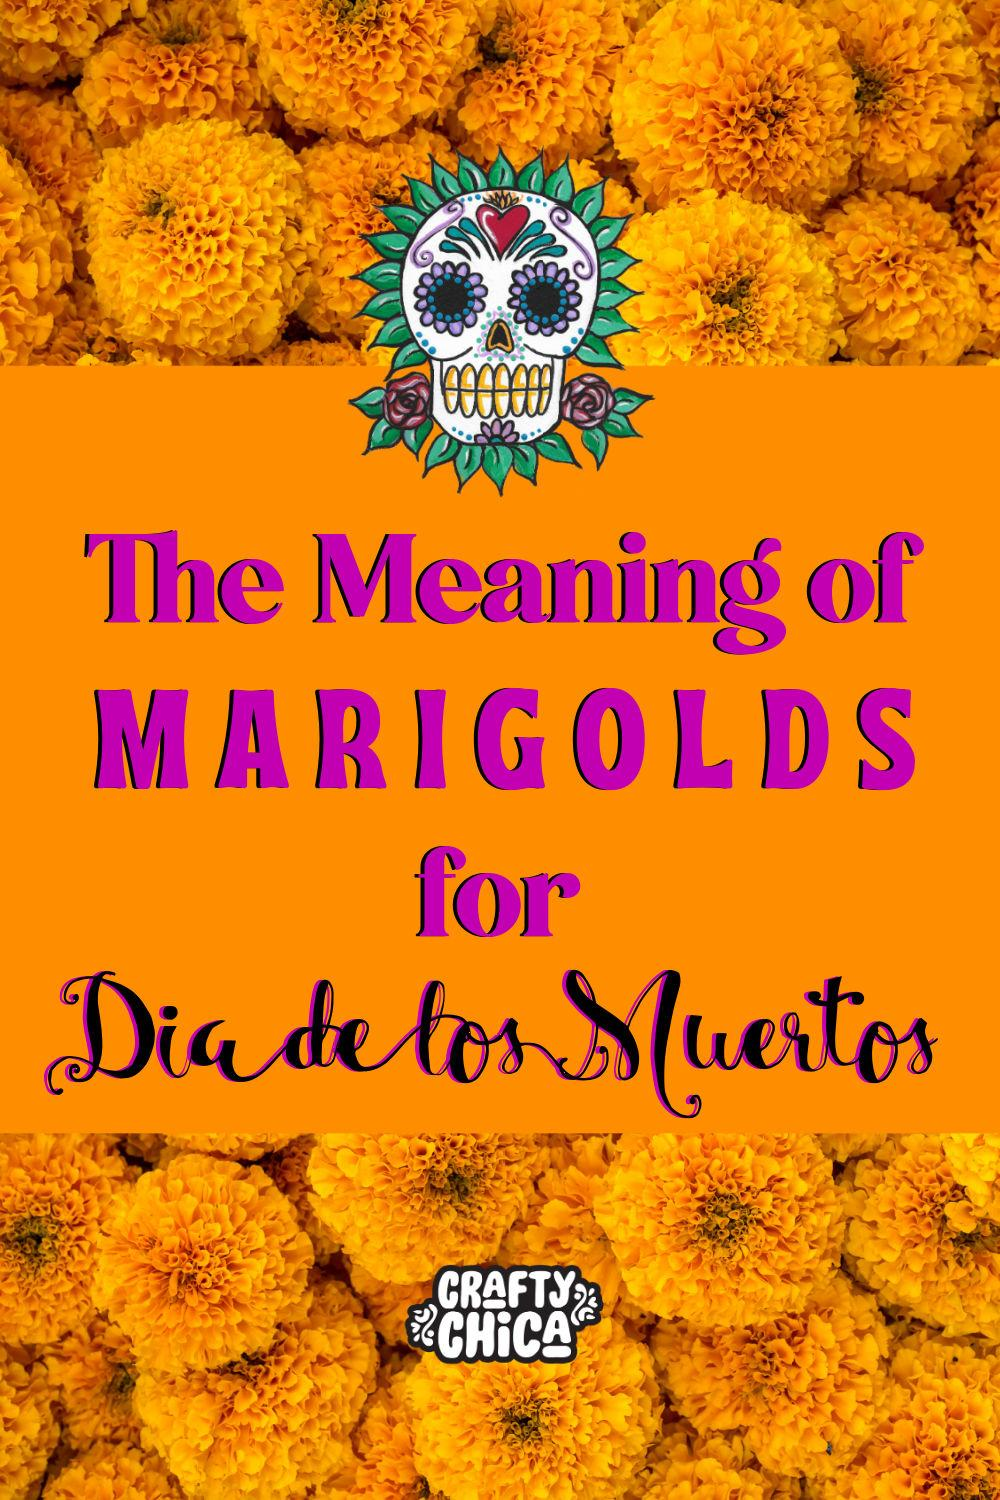 Meaning of Marigolds for Dia de Los Muertos #craftychica #marigolds